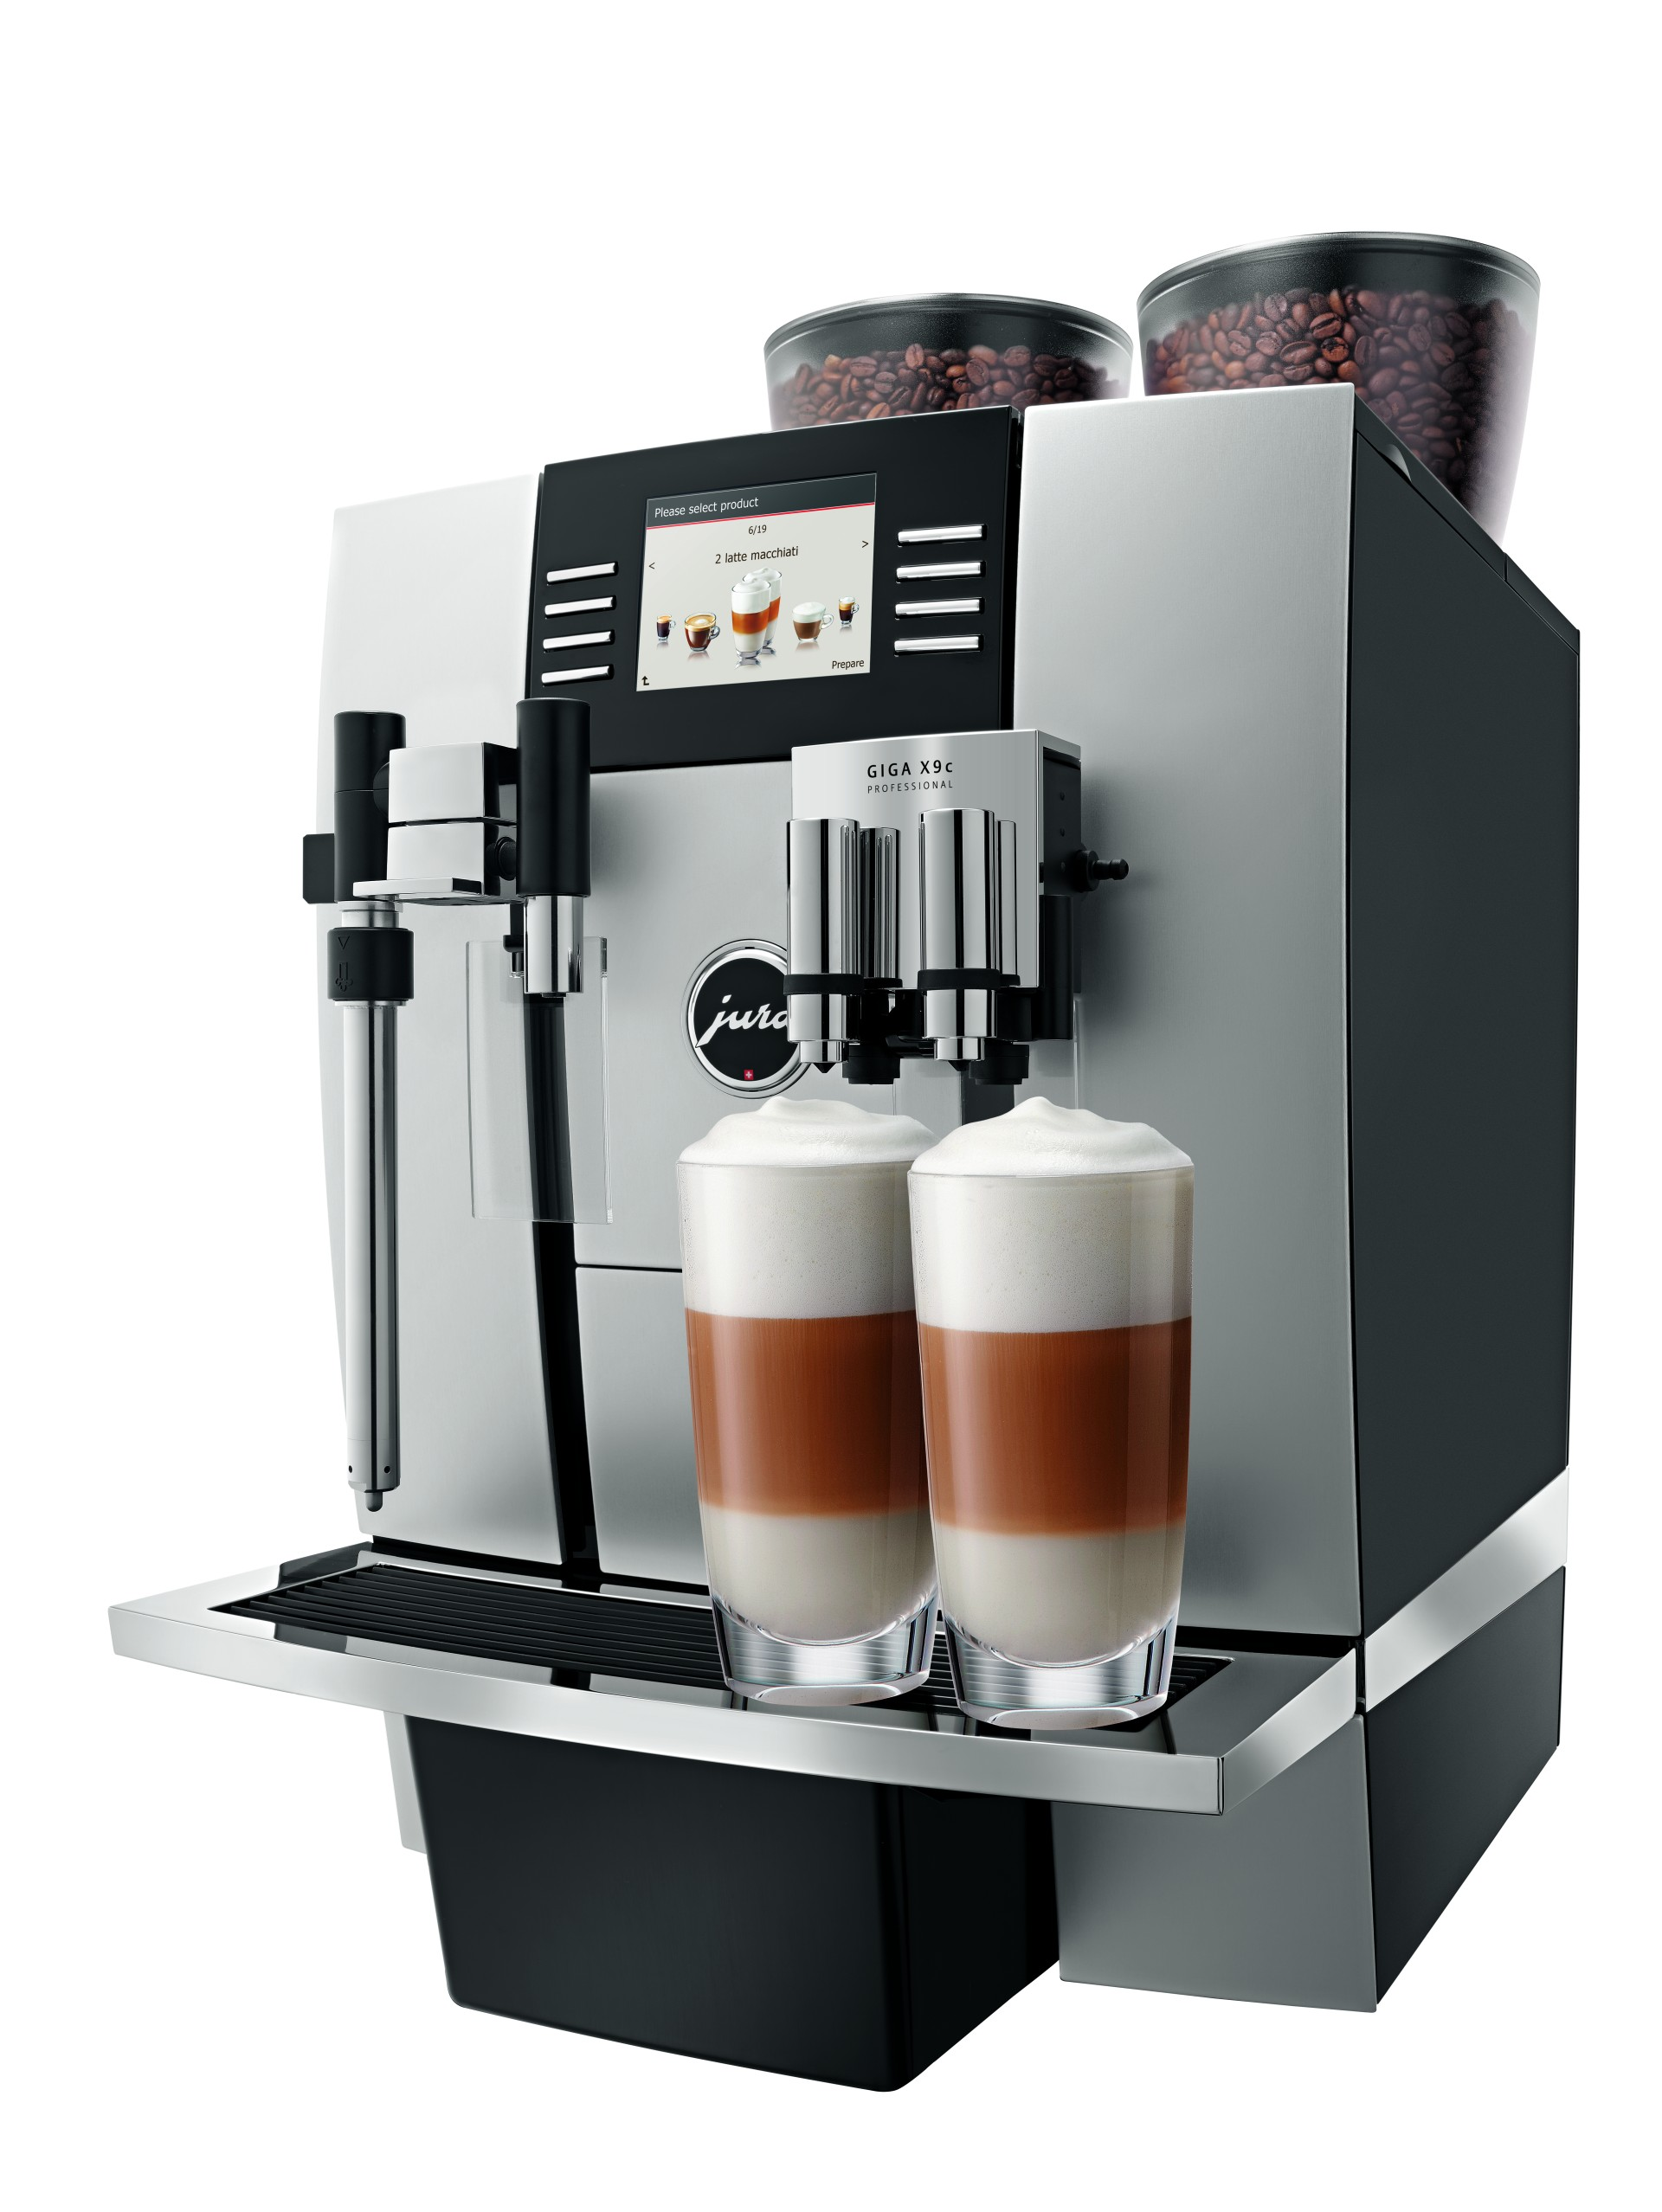 jura giga x9 professional automatic coffee machine coffitascoffitas. Black Bedroom Furniture Sets. Home Design Ideas